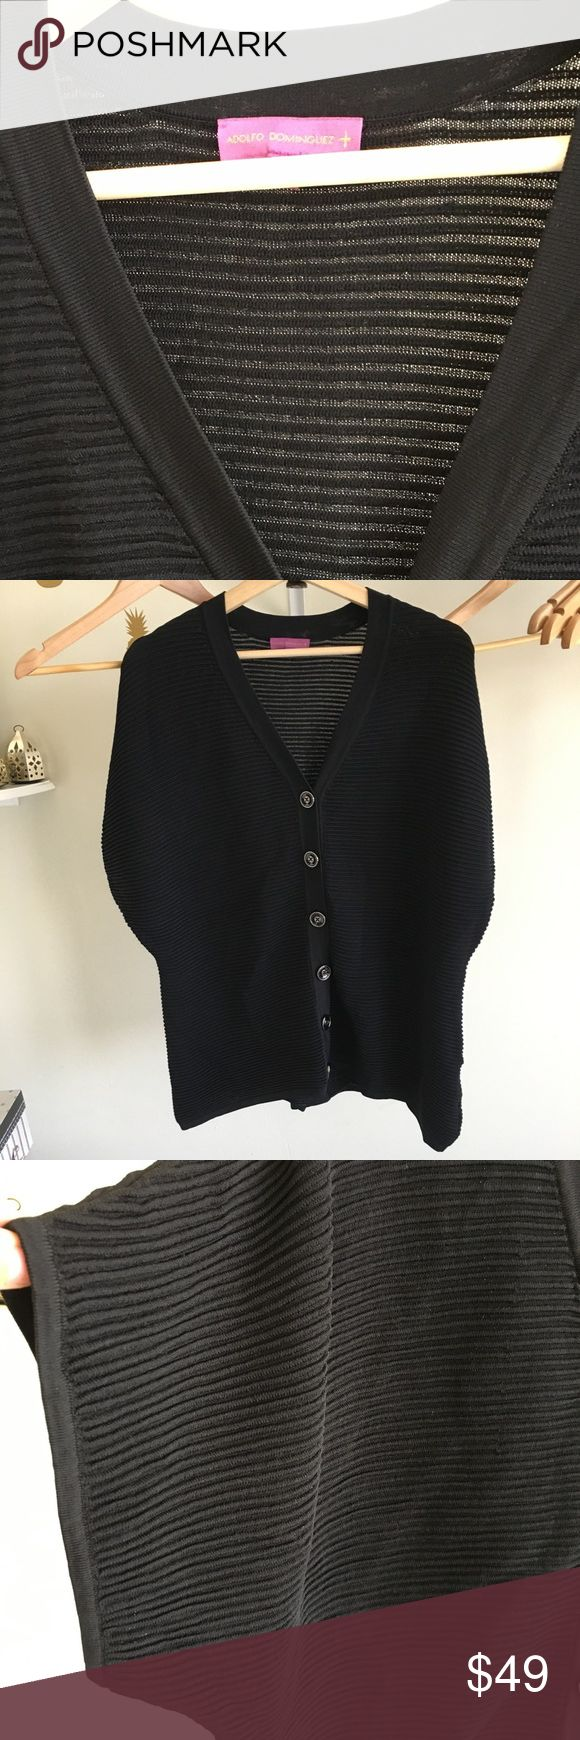 Adolfo Dominguez big button cardigan Short dolman sleeves new without tags in perfect condition Cardigan. Very high end and well made. Size small but relax fit. Runs big. Adolfo Dominguez Sweaters Cardigans